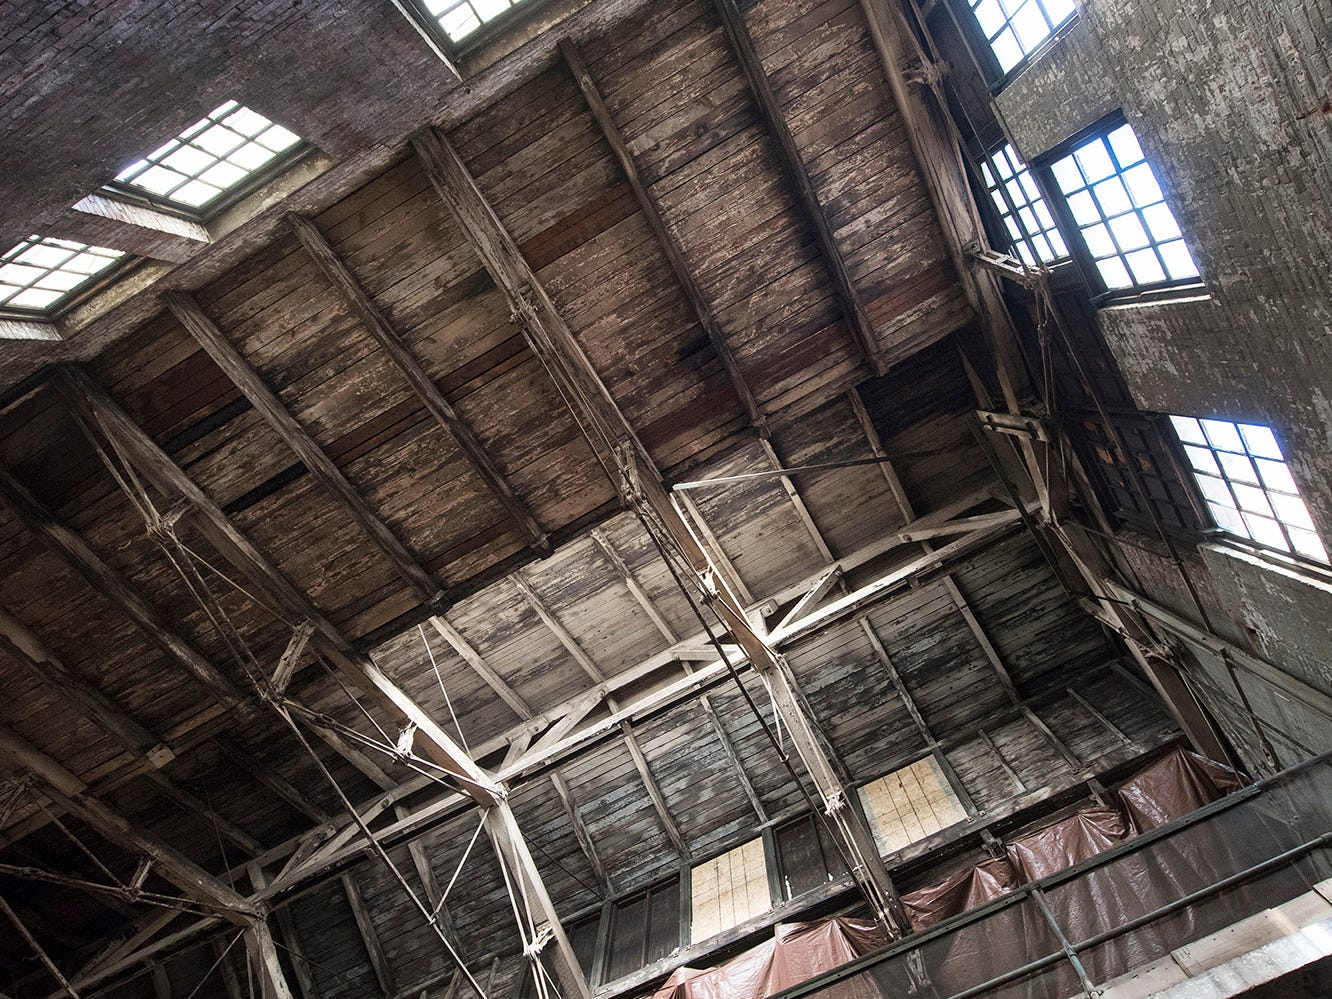 Looking up at the multi-tired roof inside the foundry building at 145 North Hartley Street in York. The 54,000-square-foot building has been gutted and refurbished however, no initial plans have been made for the site.